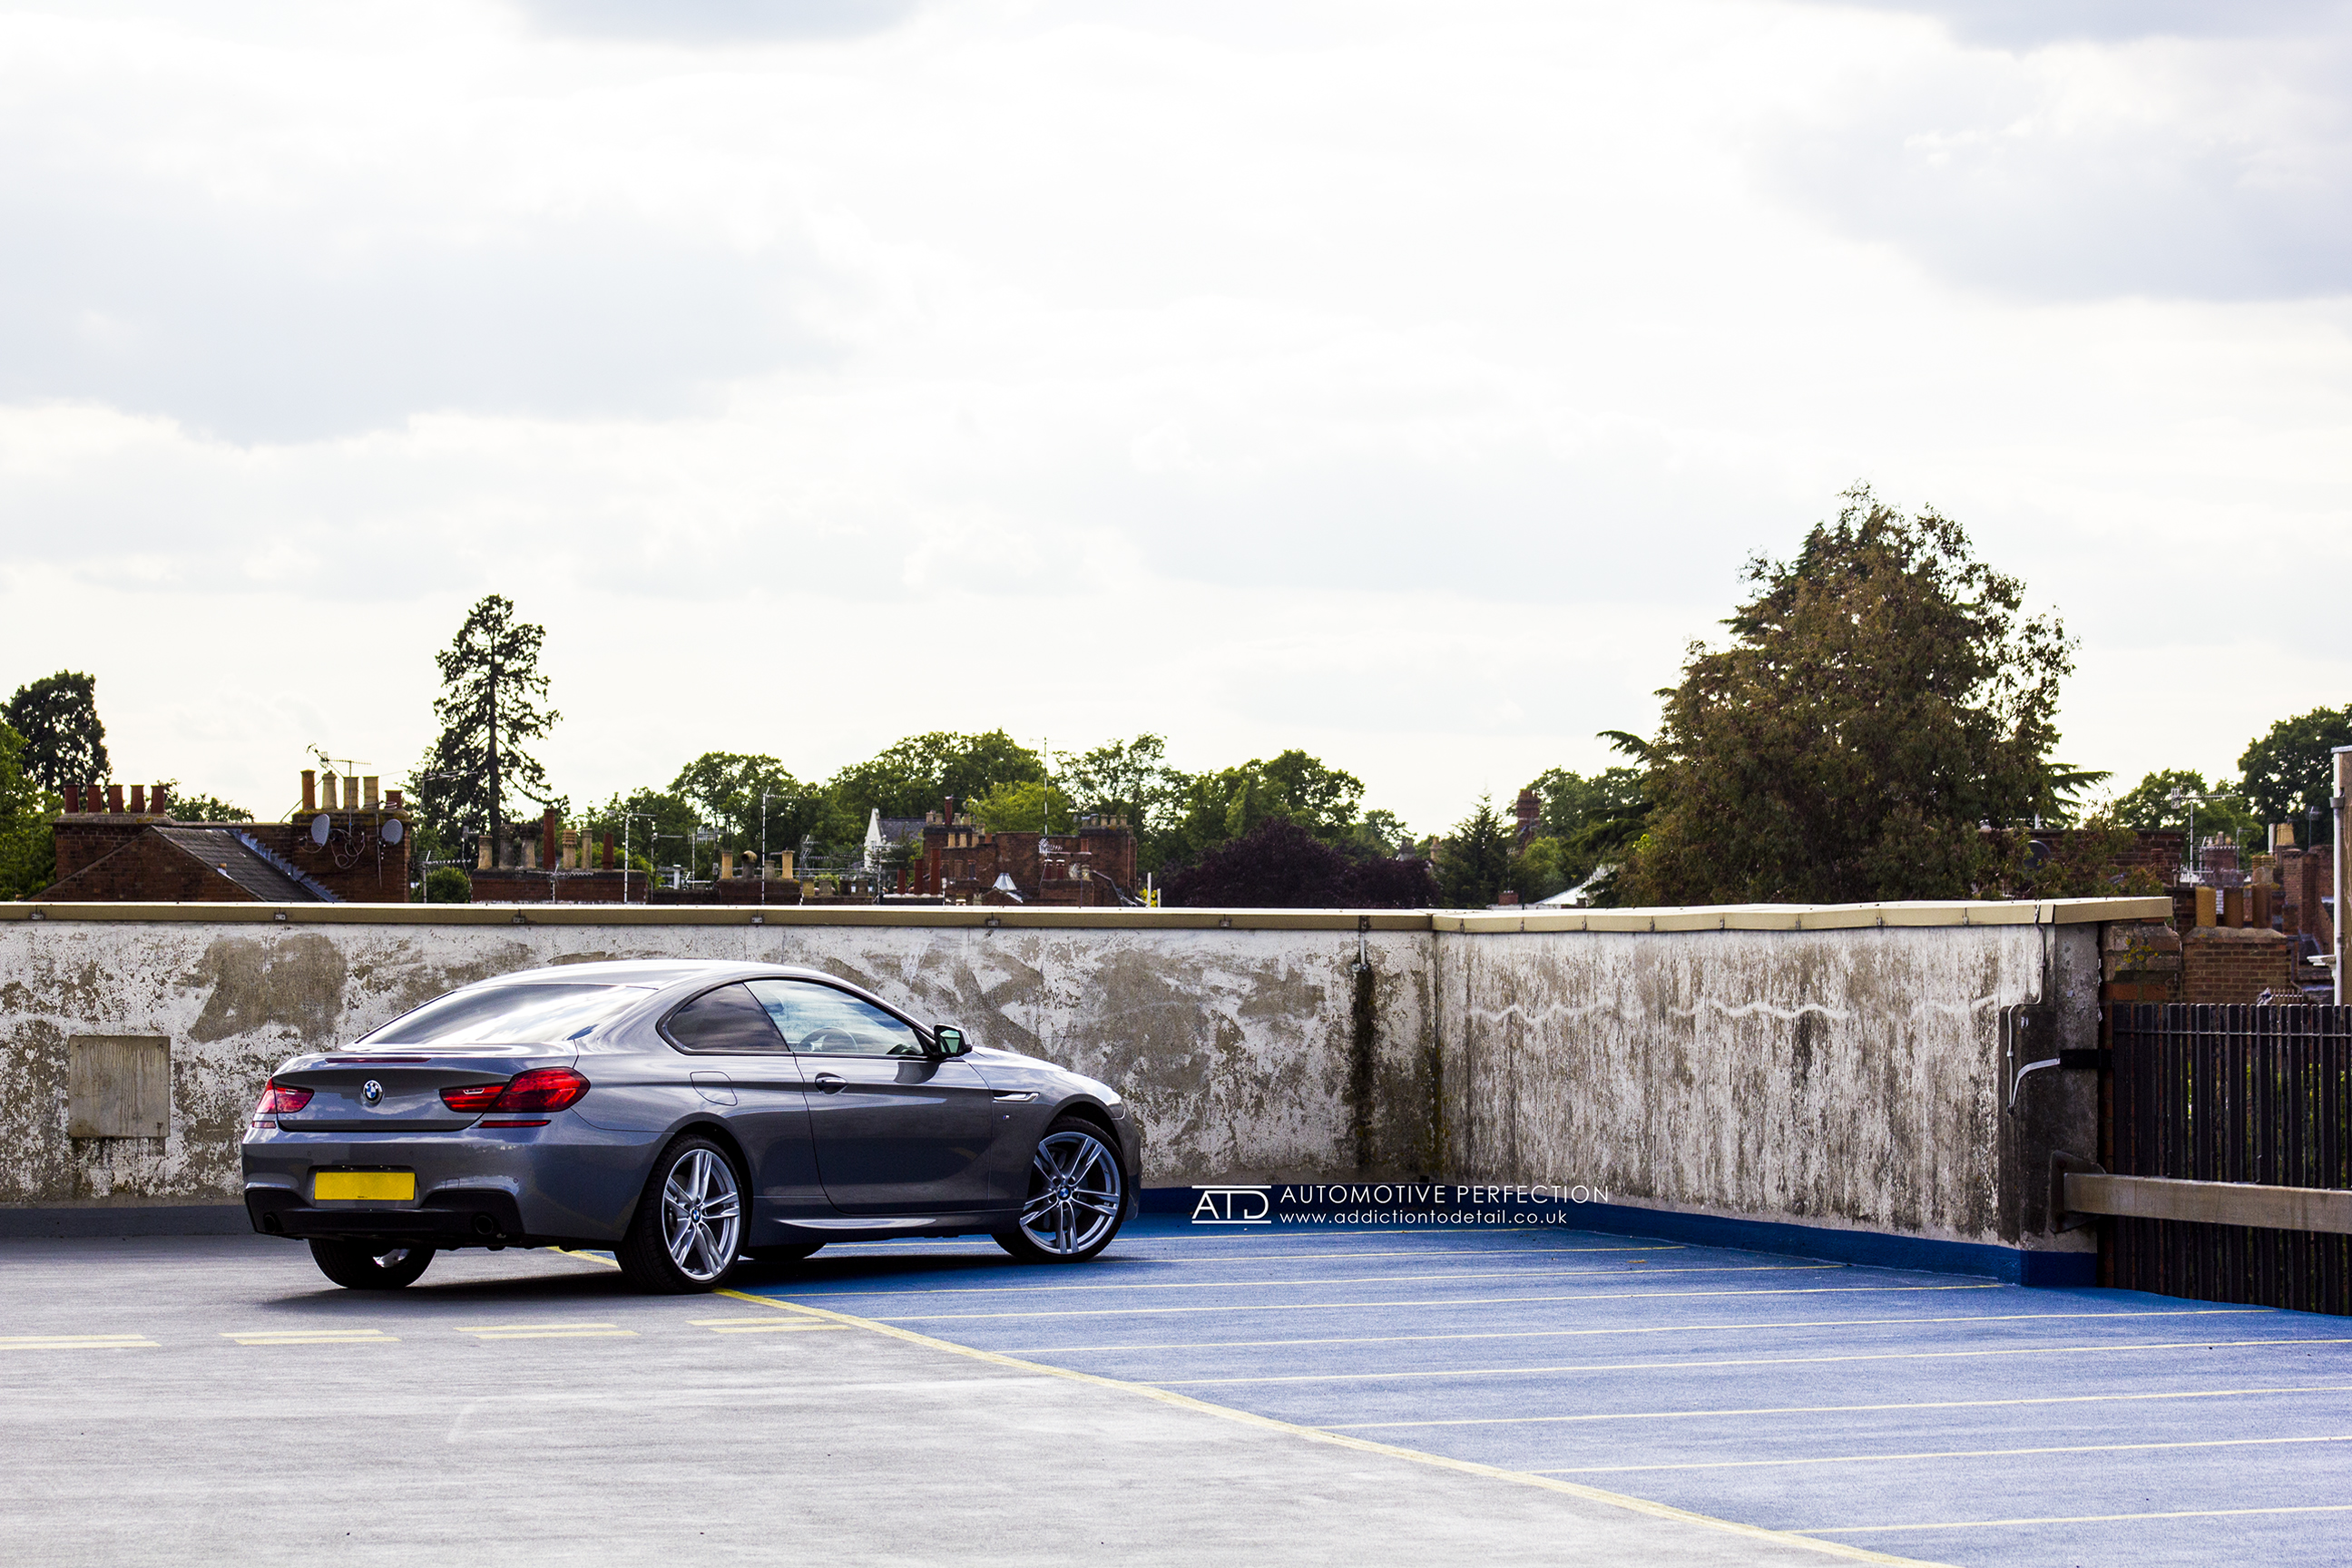 640D_Coupe_Photoshoot__0014_Image_020.jpg